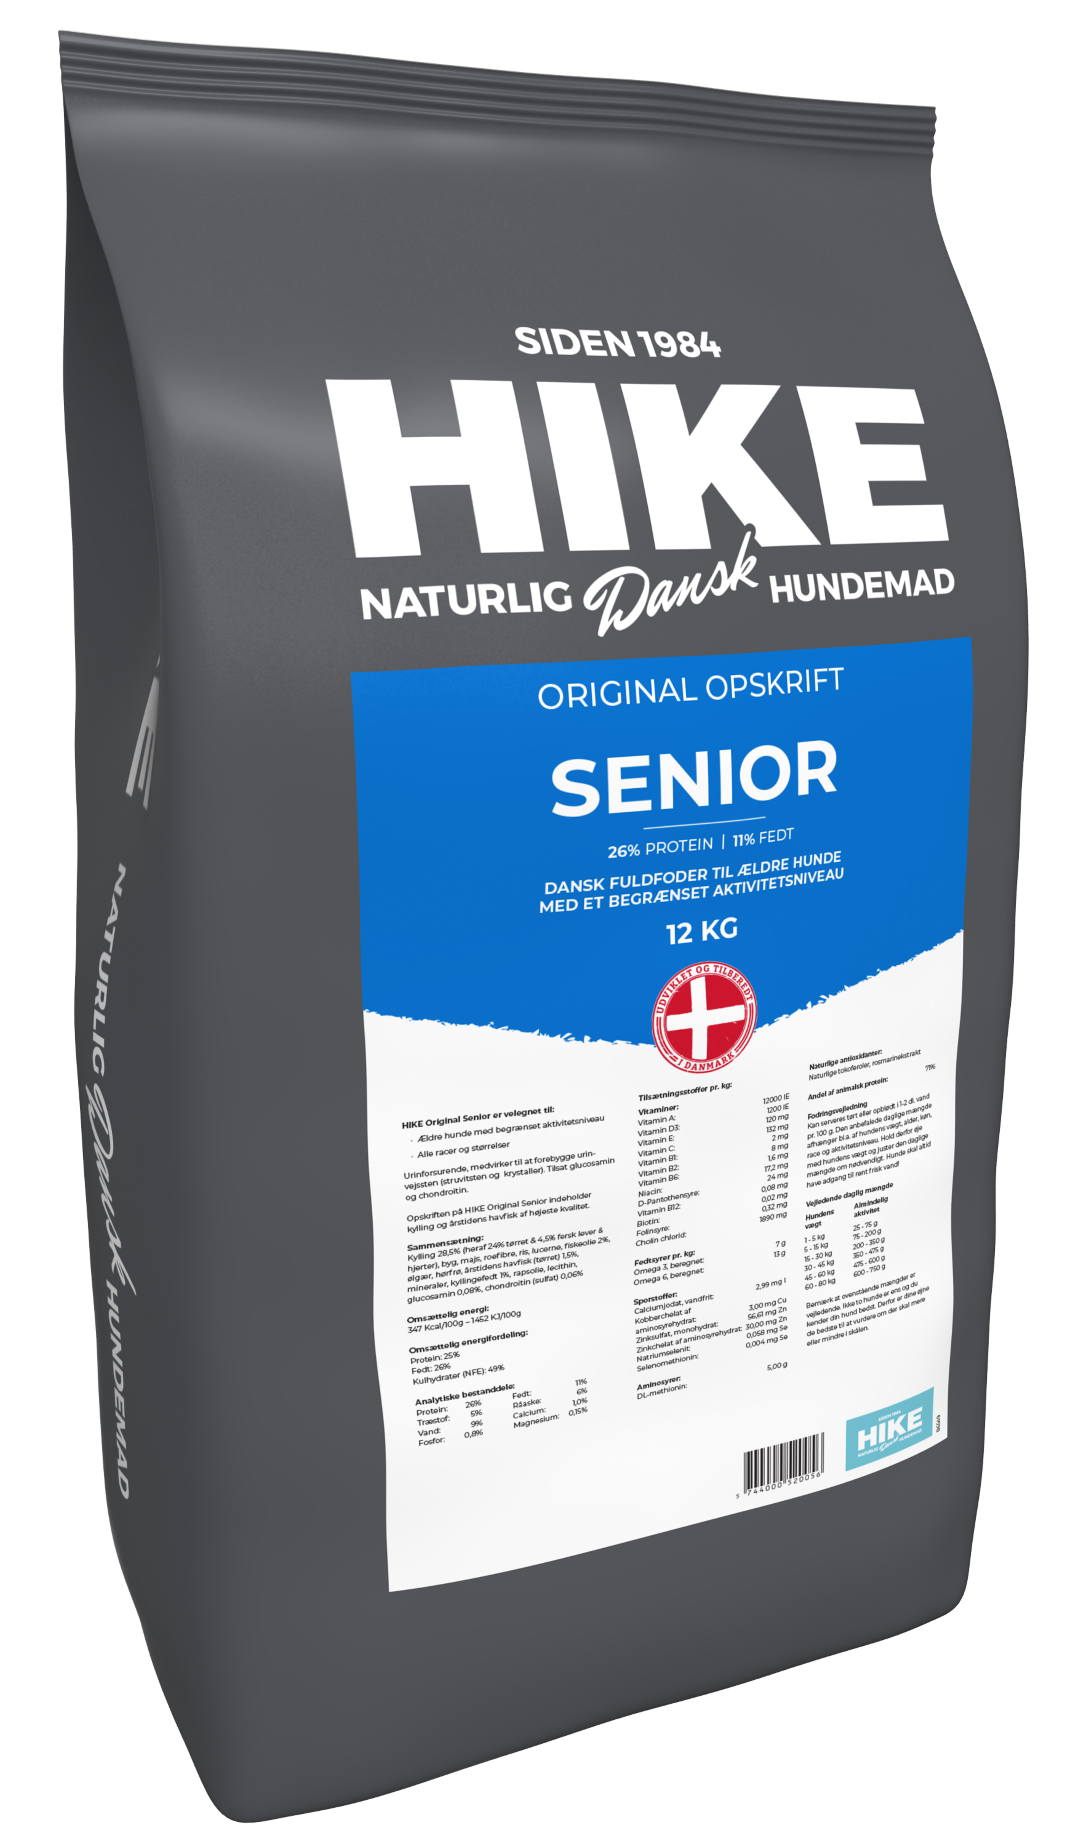 HIKE ORIGINAL Senior 26/11 hundemad 12 kg